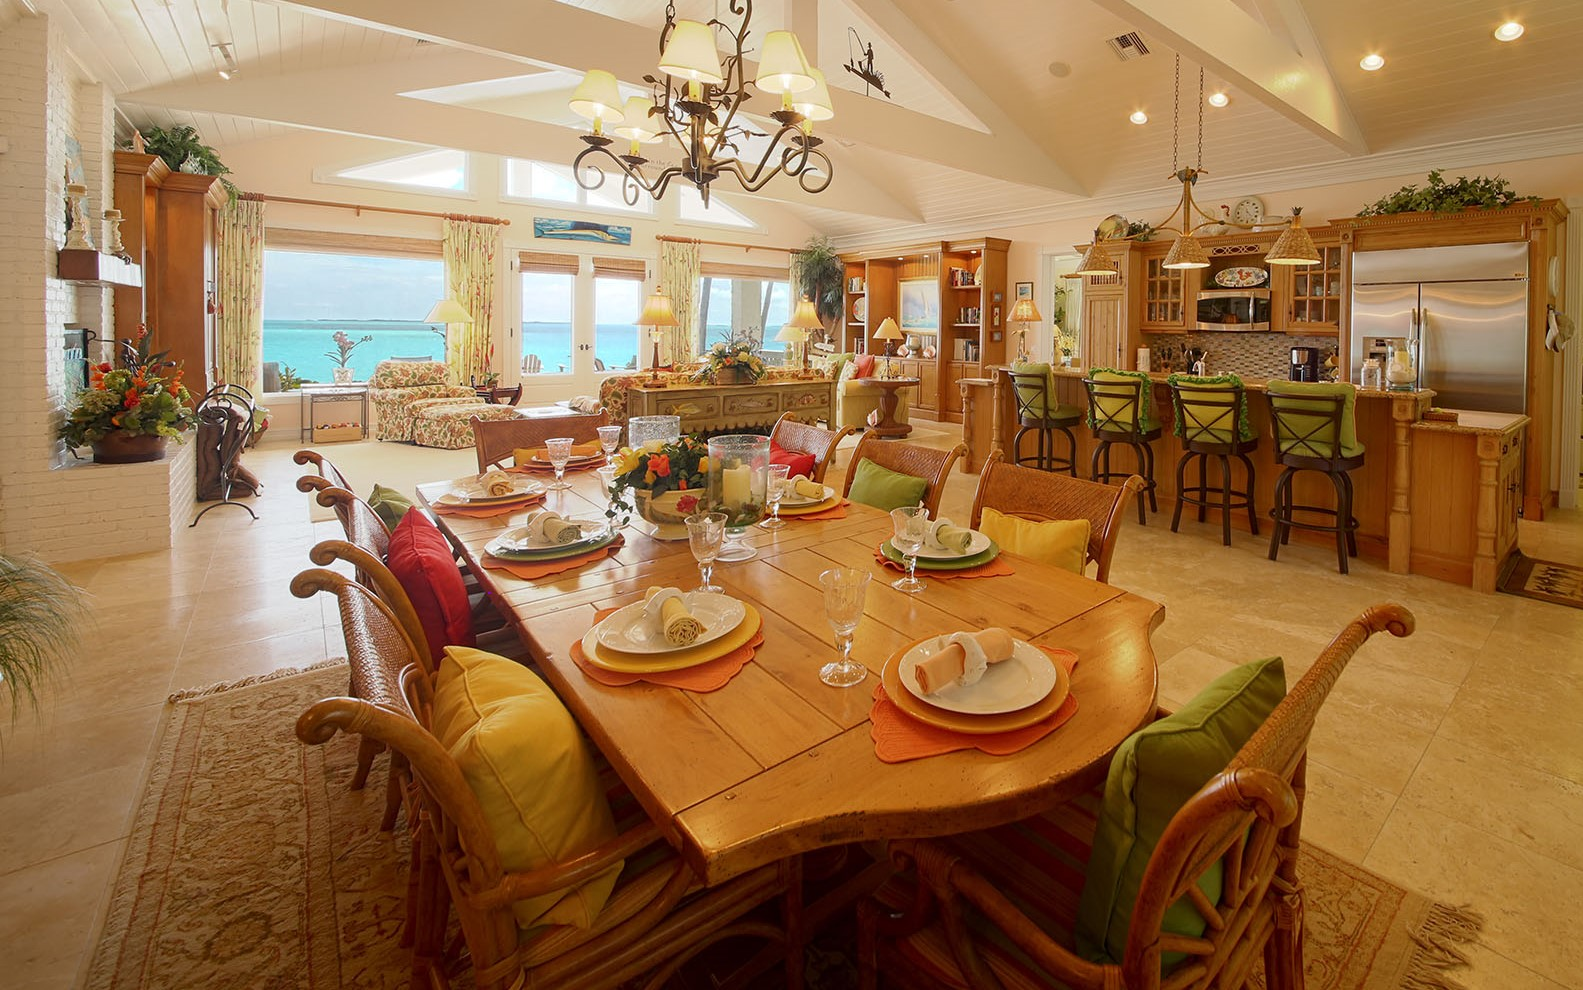 Maison unifamiliale pour l Vente à Luxury Beachfront Estate on Treasure Cay Beach Abaco, Bahamas